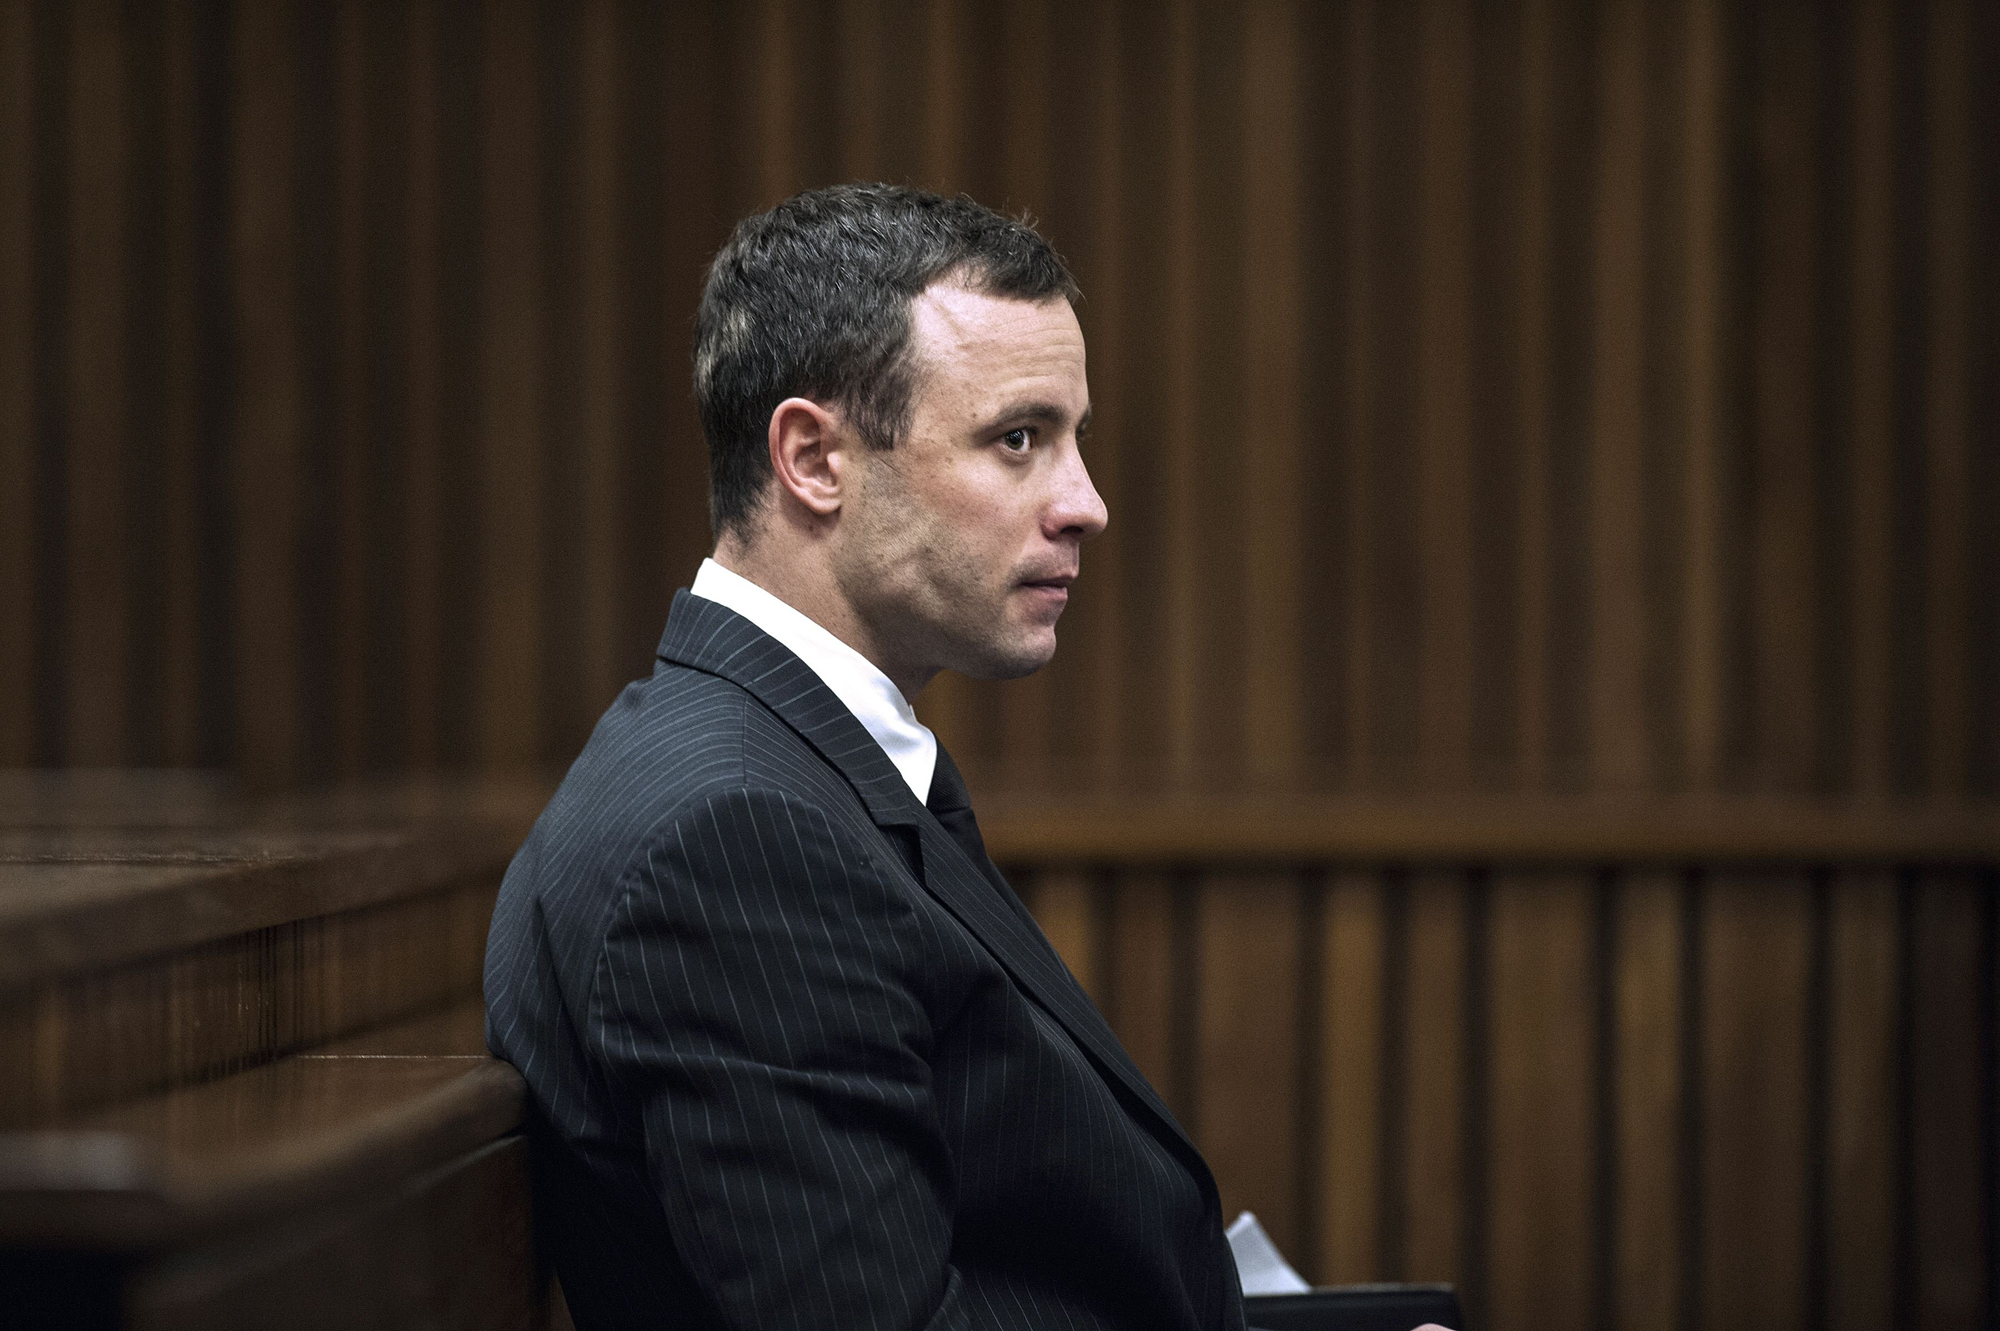 Paralympian Oscar Pistorius sits in the dock during his murder trial at the High Court in Pretoria, on July 2, 2014.